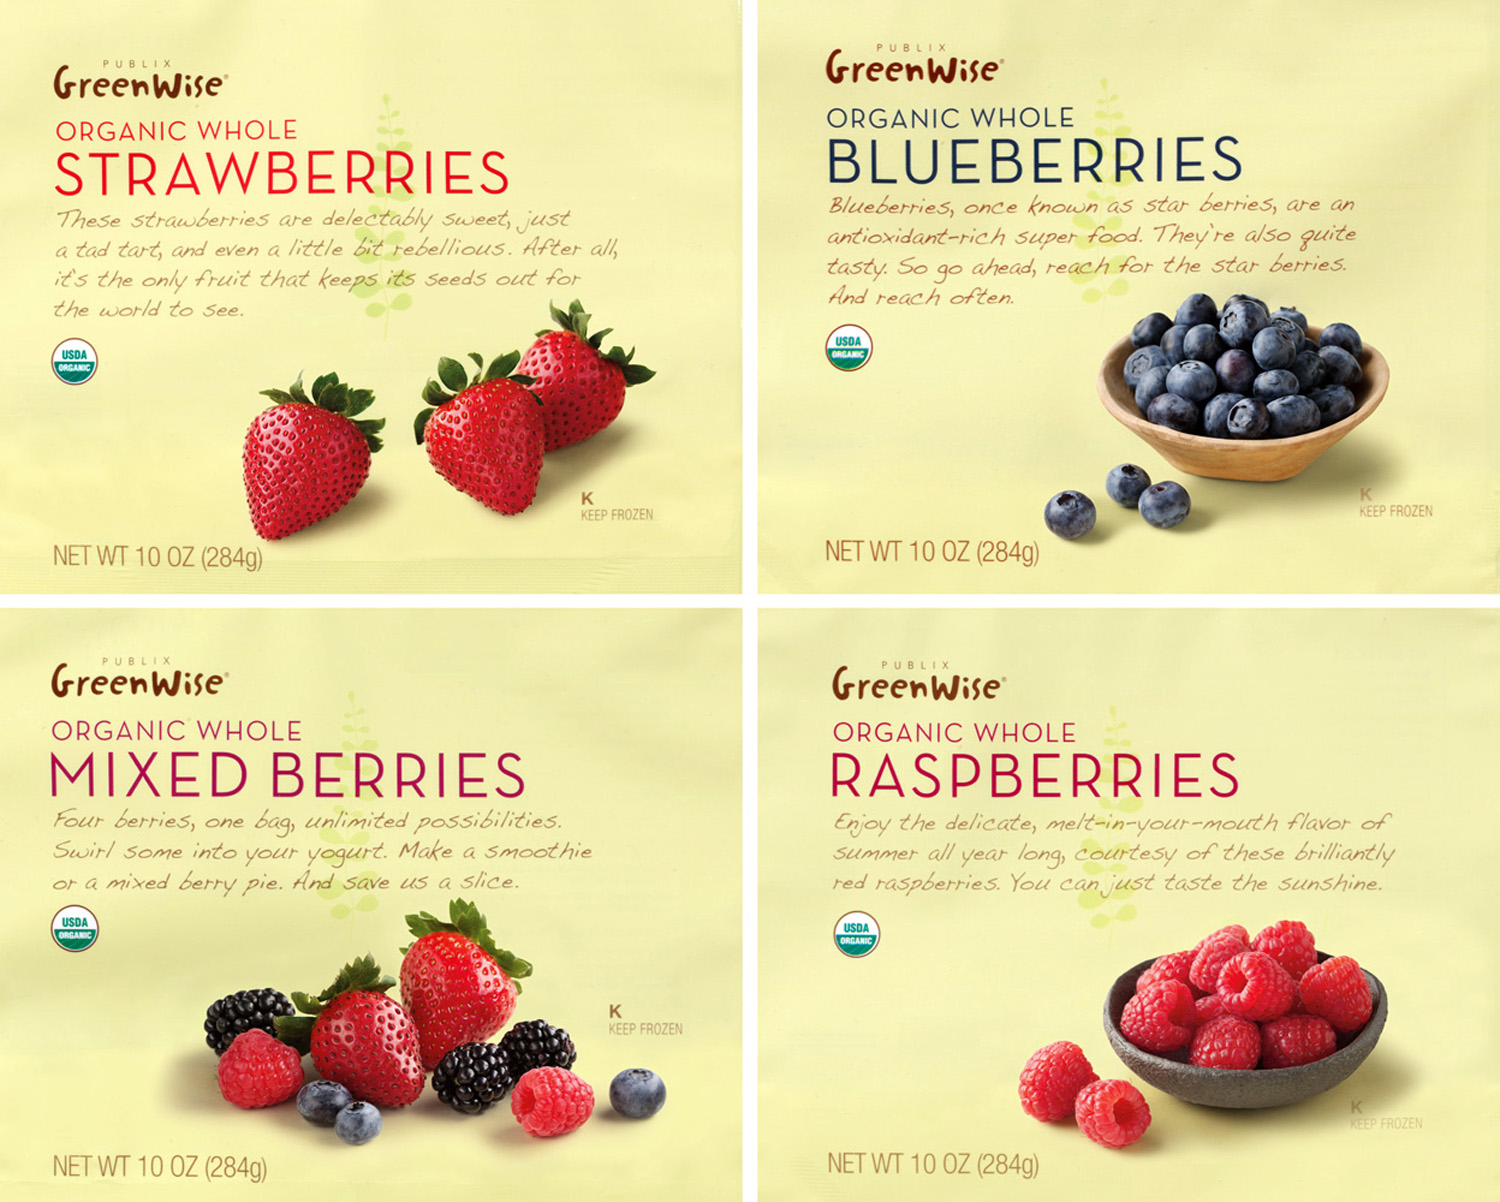 Berries Greenwise (1).jpg